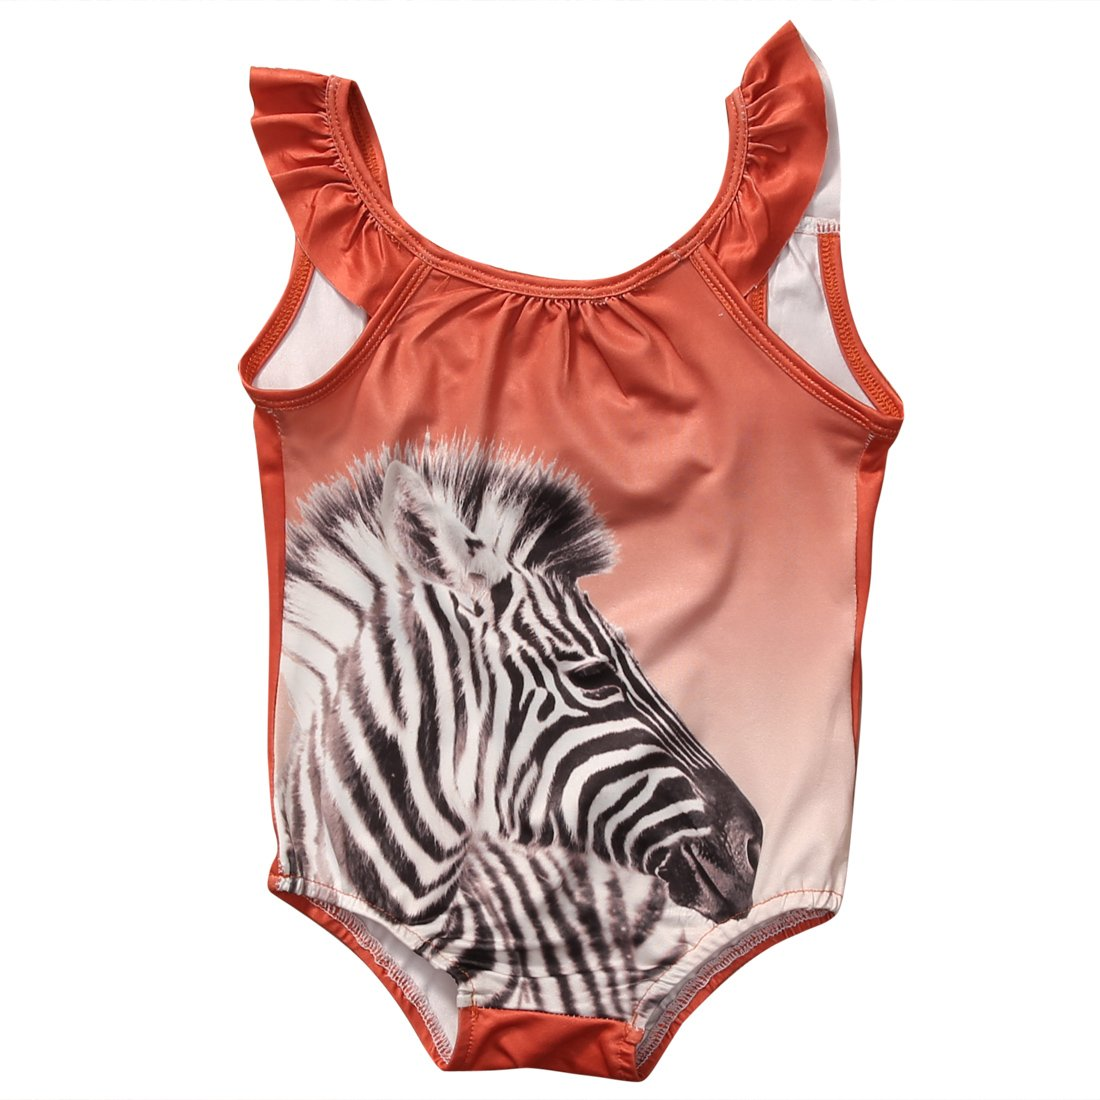 Infant Toddler Baby Summer One-Piece Swimsuit Dudette/Animal Cartoon Bathing Suit